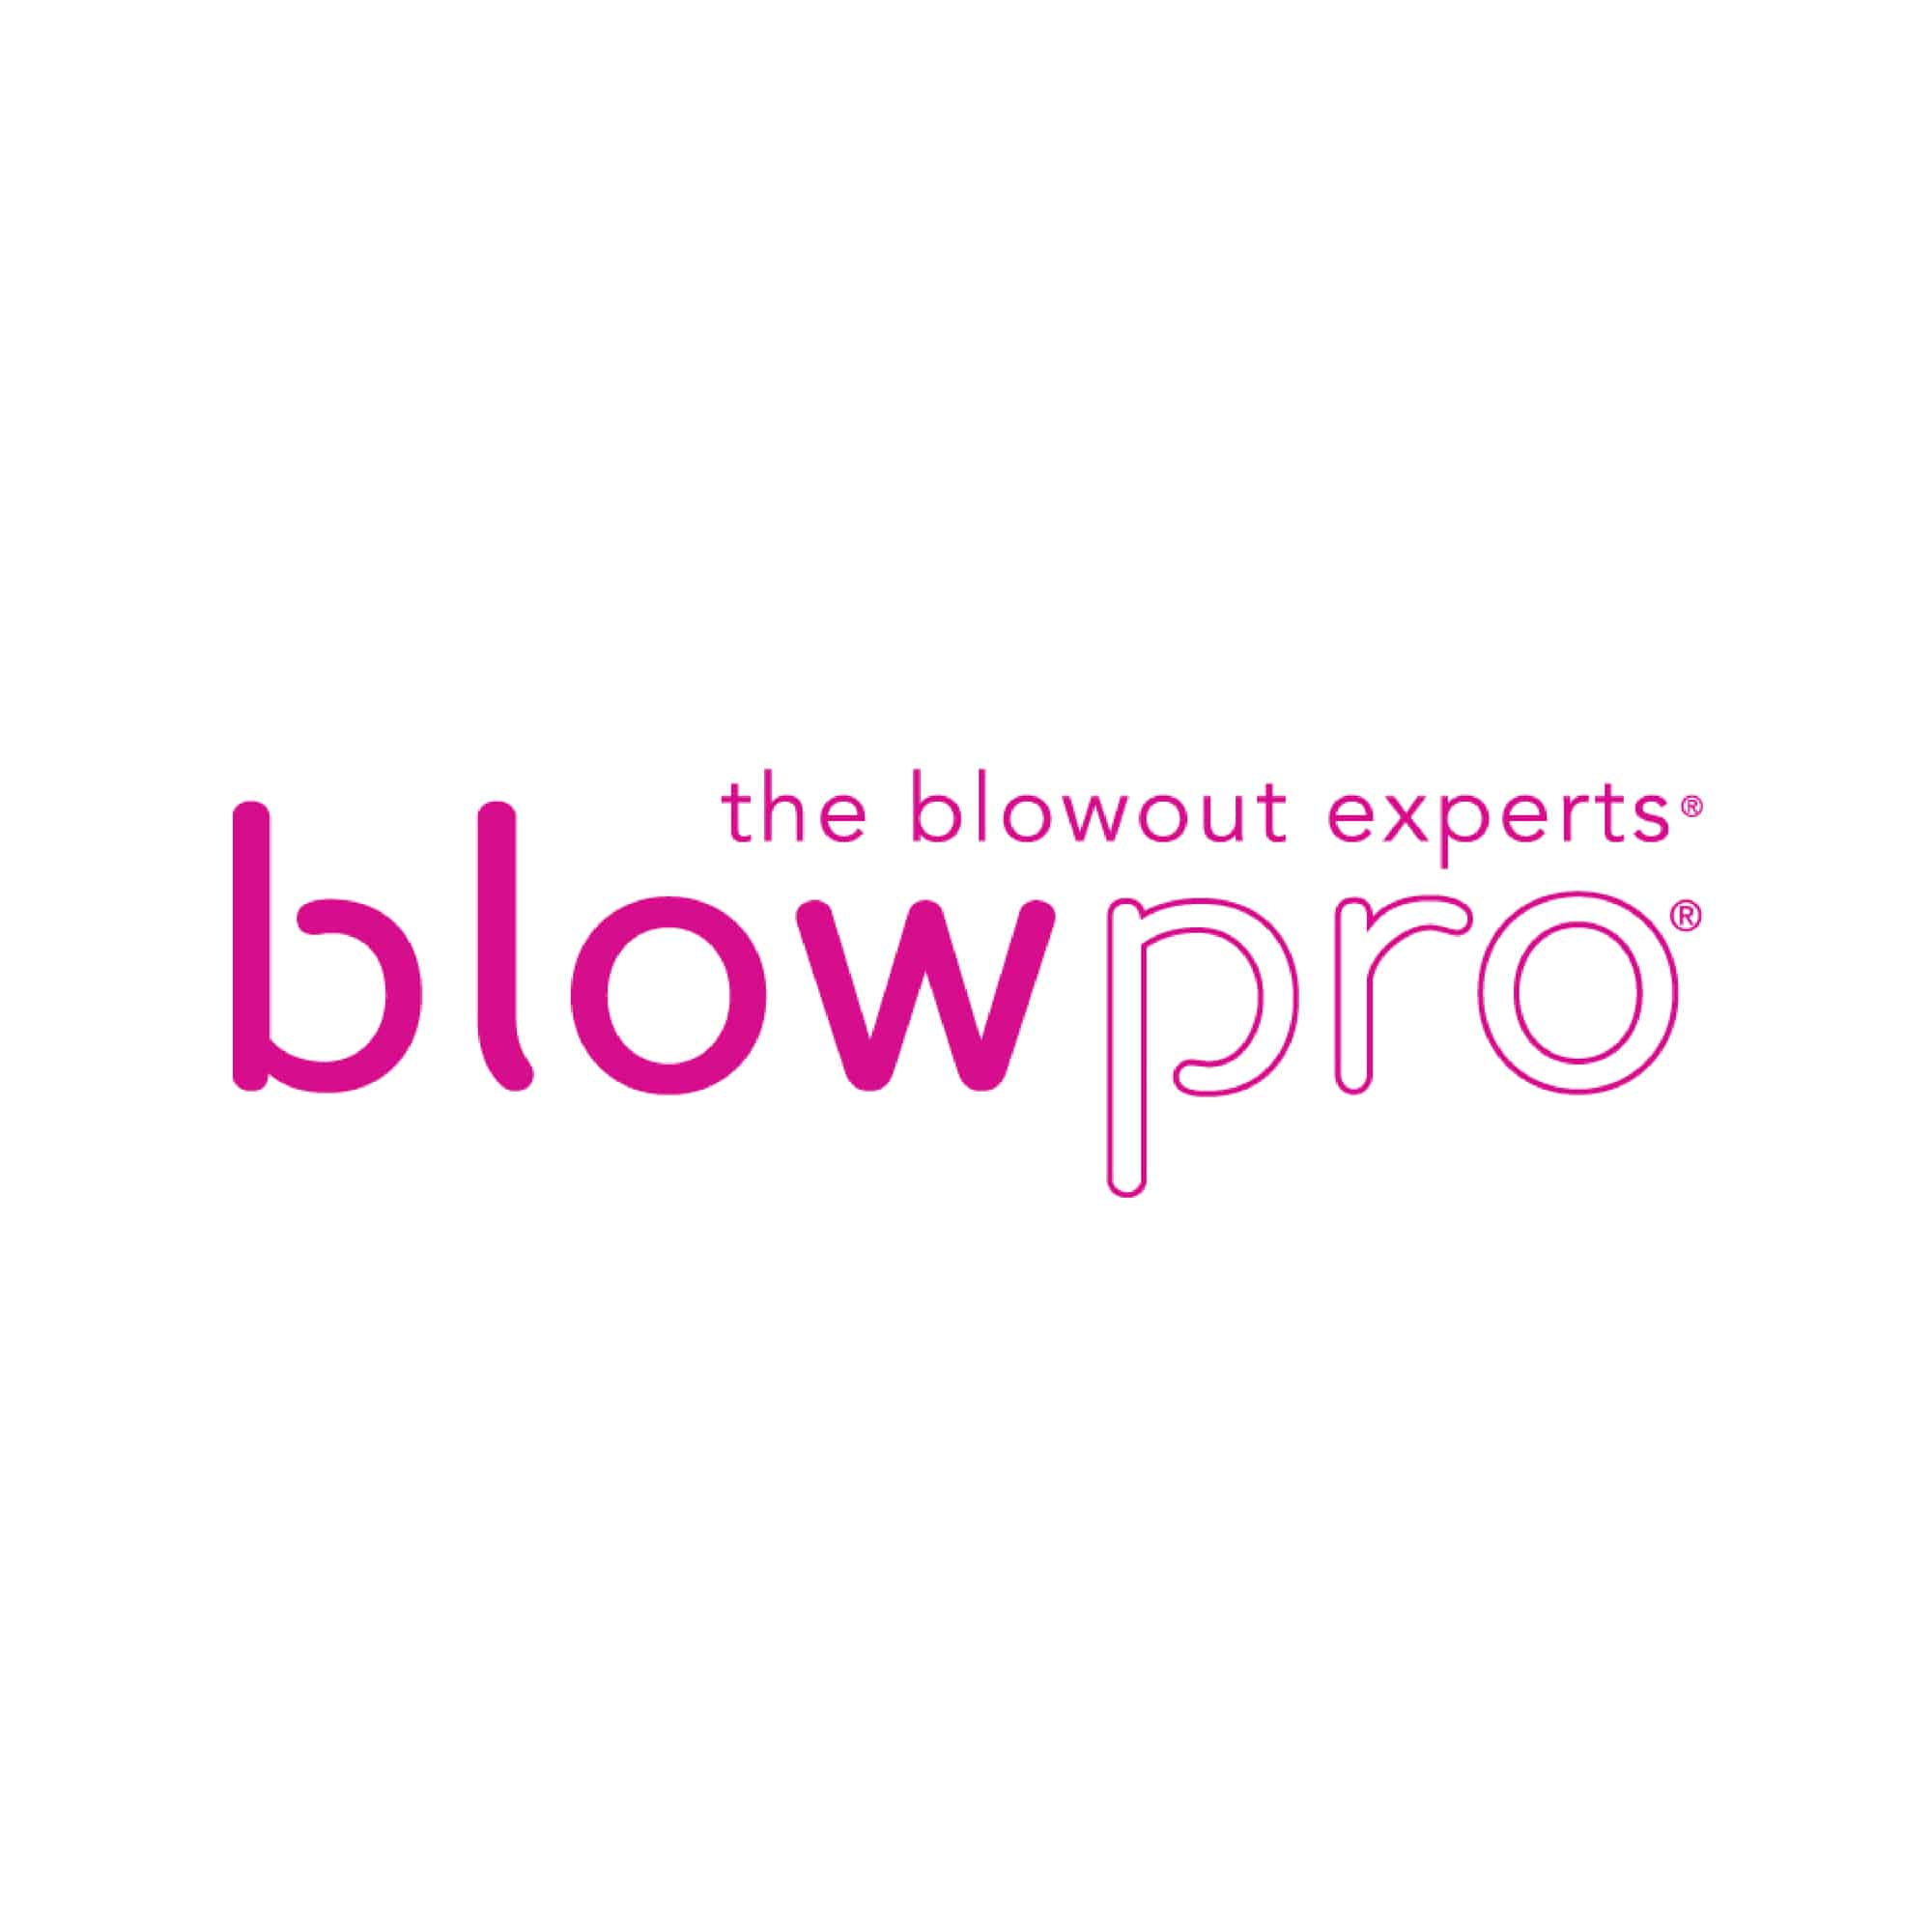 Official Blowpro logo